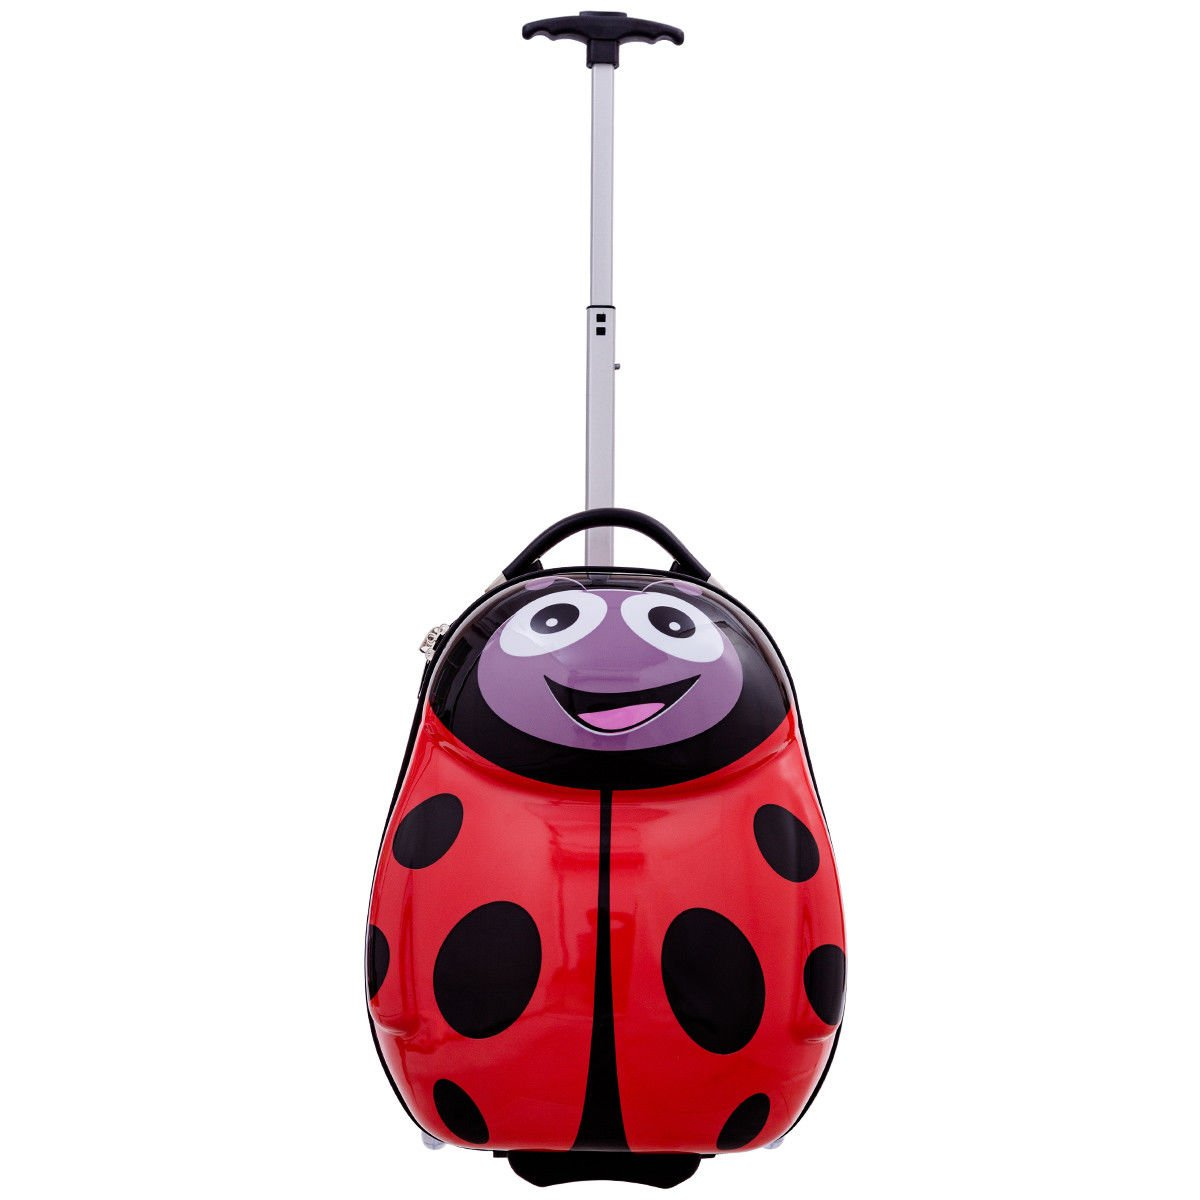 Goplus 2Pc 13'' 19'' Kids Carry On Luggage Set Travel Trolley Suitcase (Ladybug) by Goplus (Image #5)